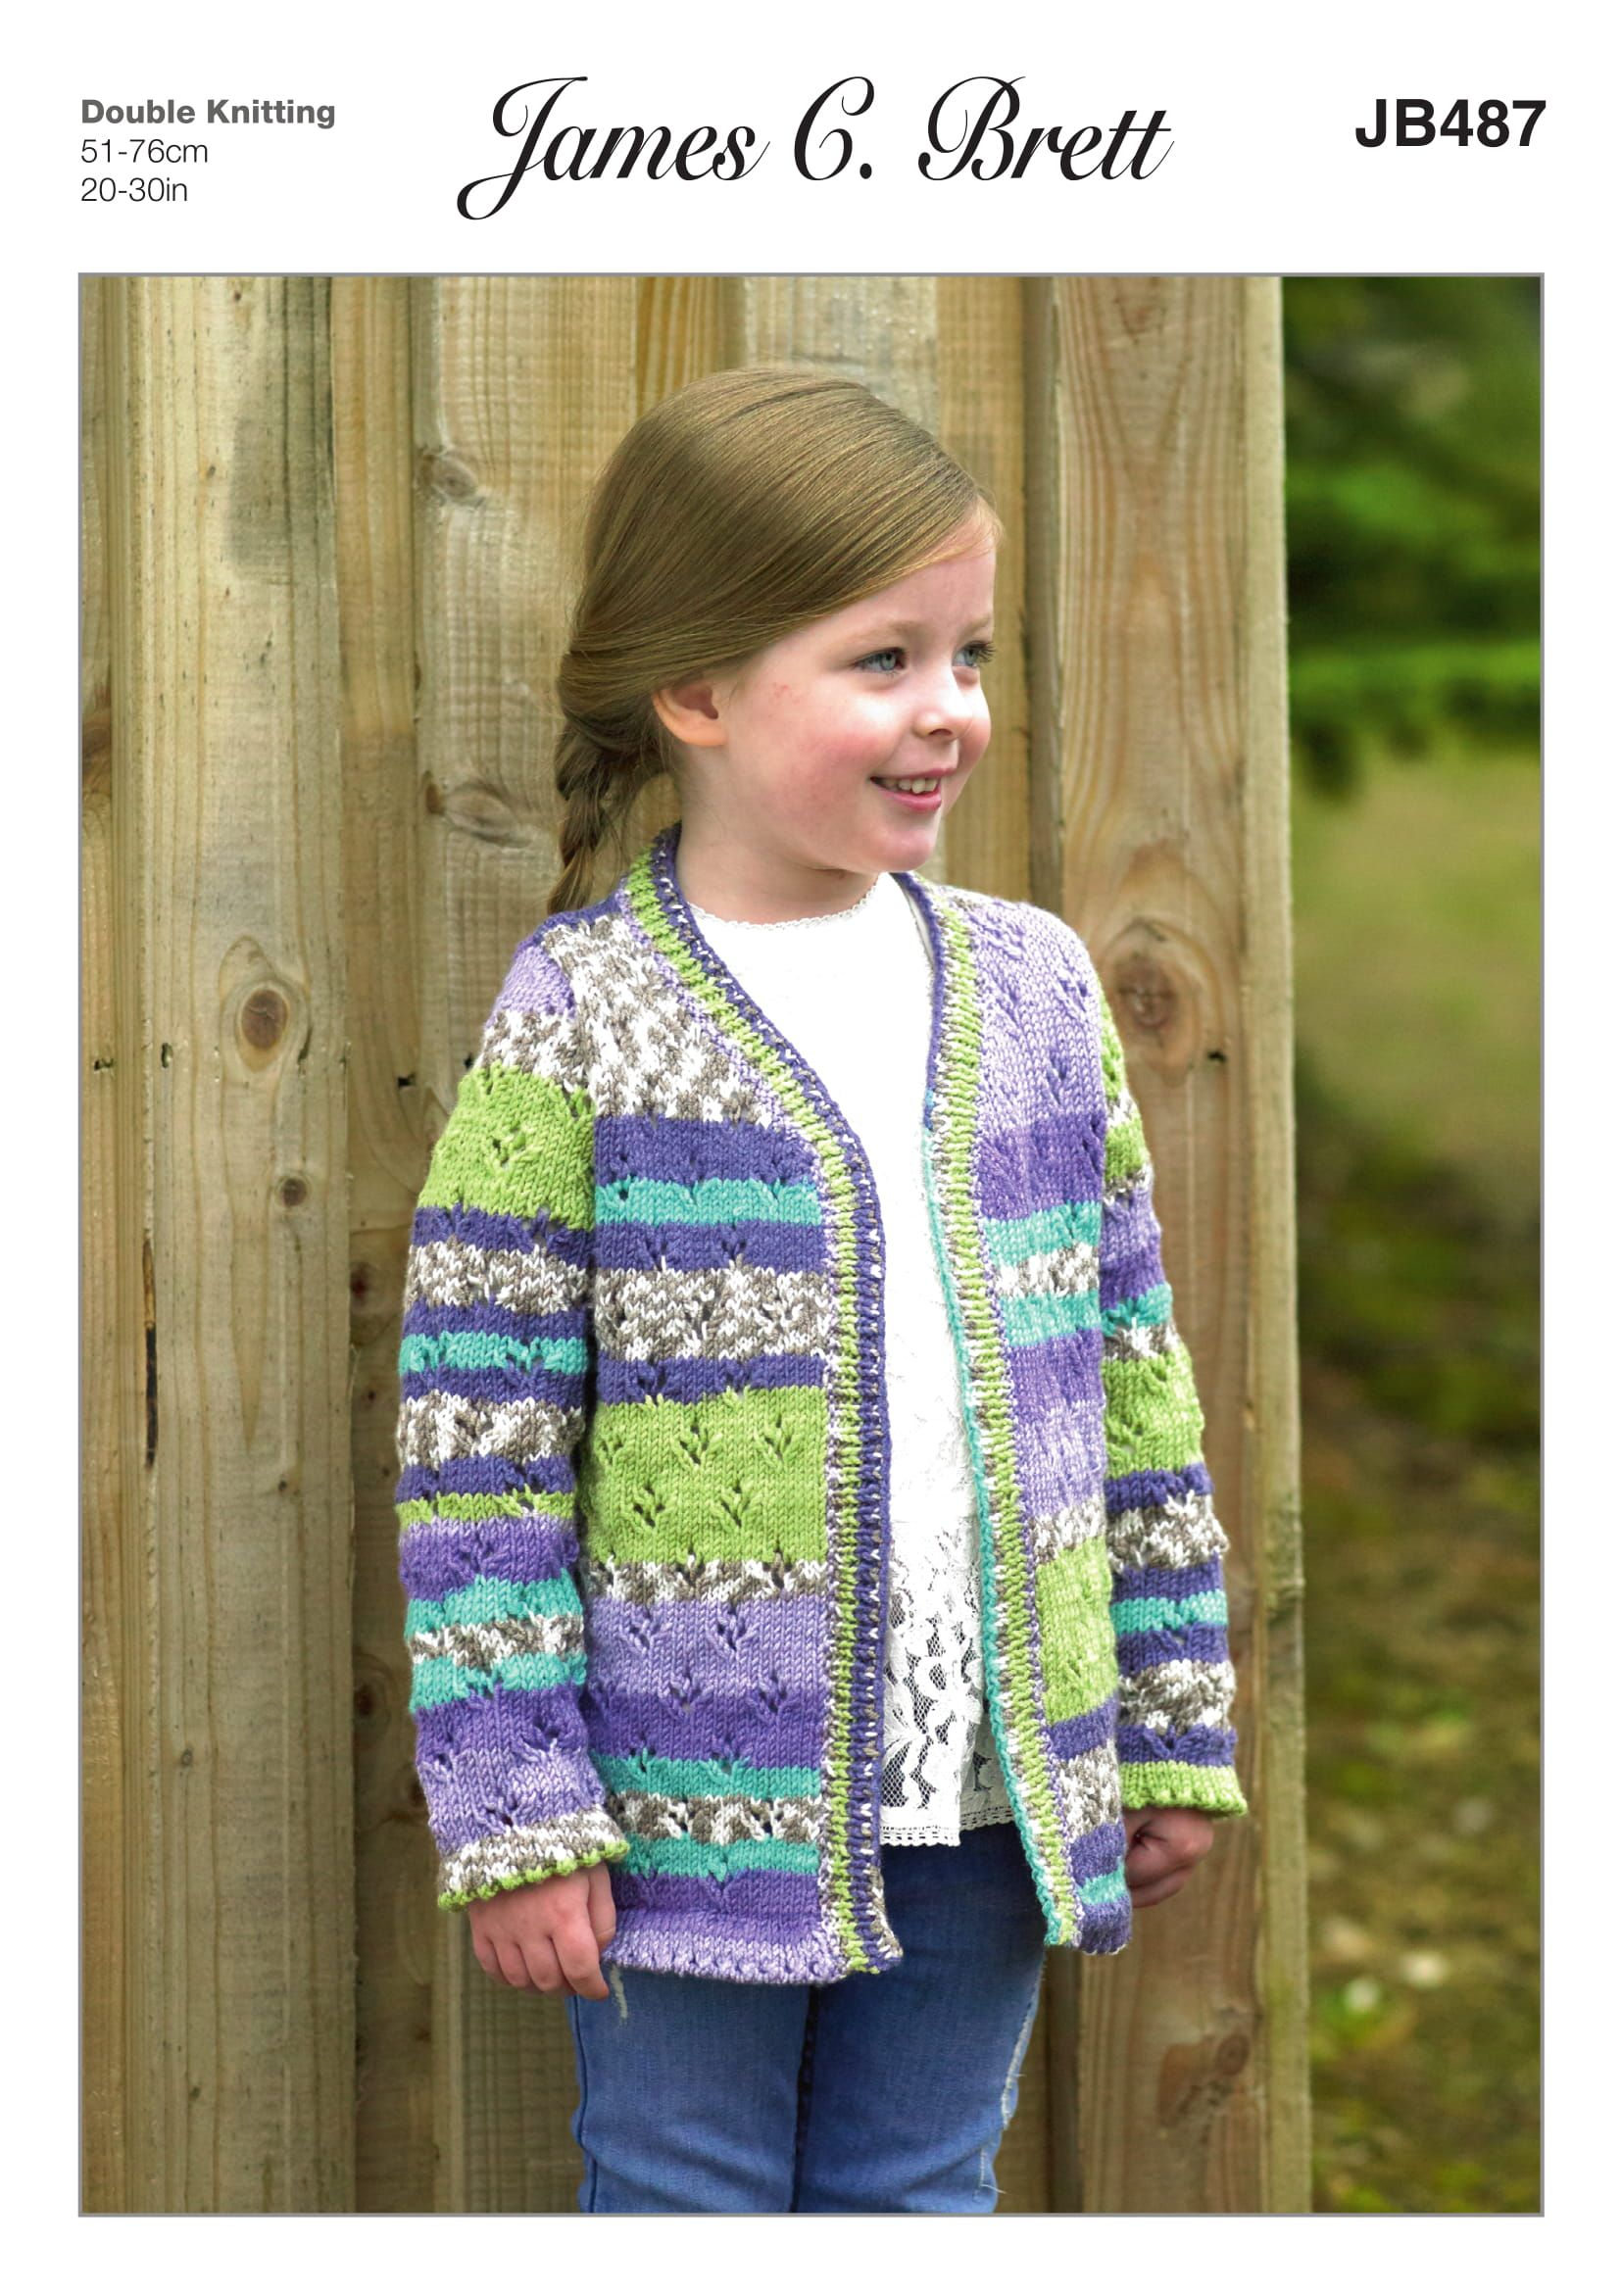 4b9508584a43a Knit Stitches · Online Only  The James C Brett Fairground DK Child s  Cardigan Pattern will help to keep